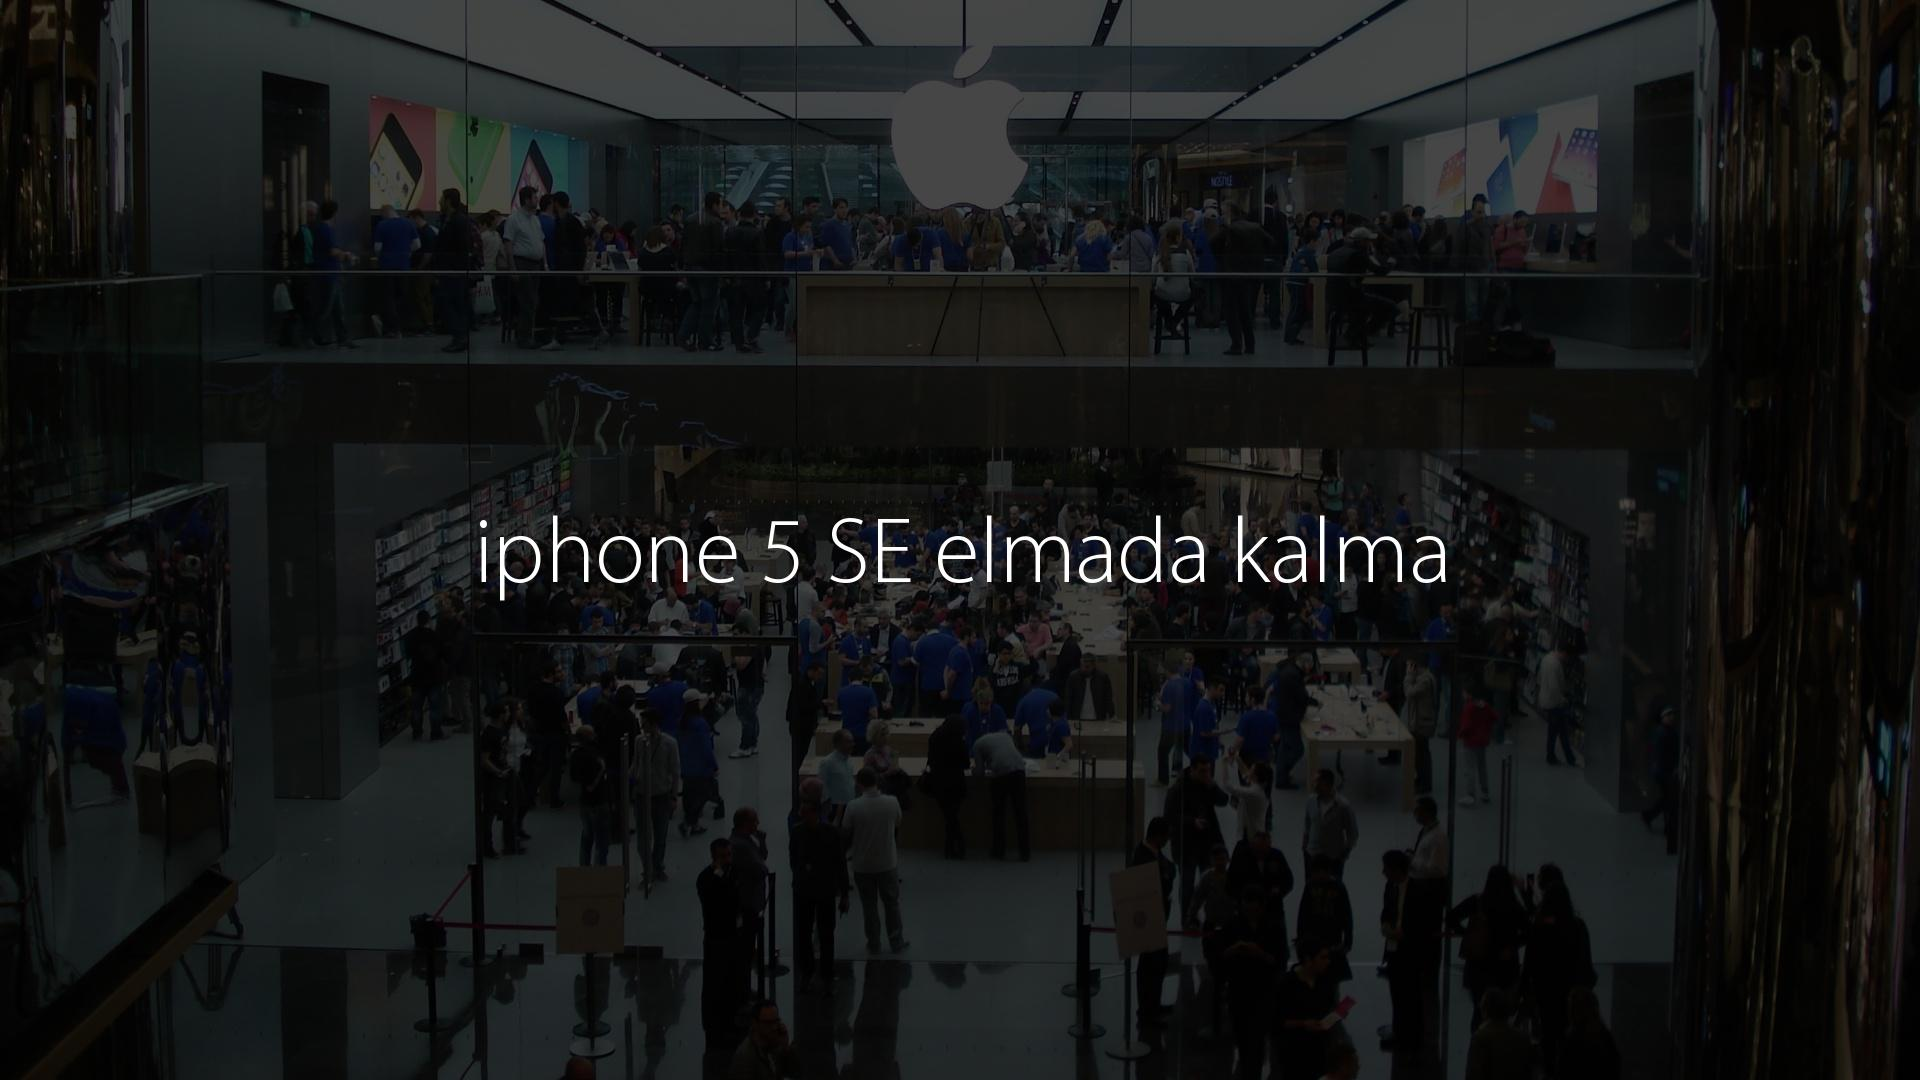 iphone 5 SE elmada kalma